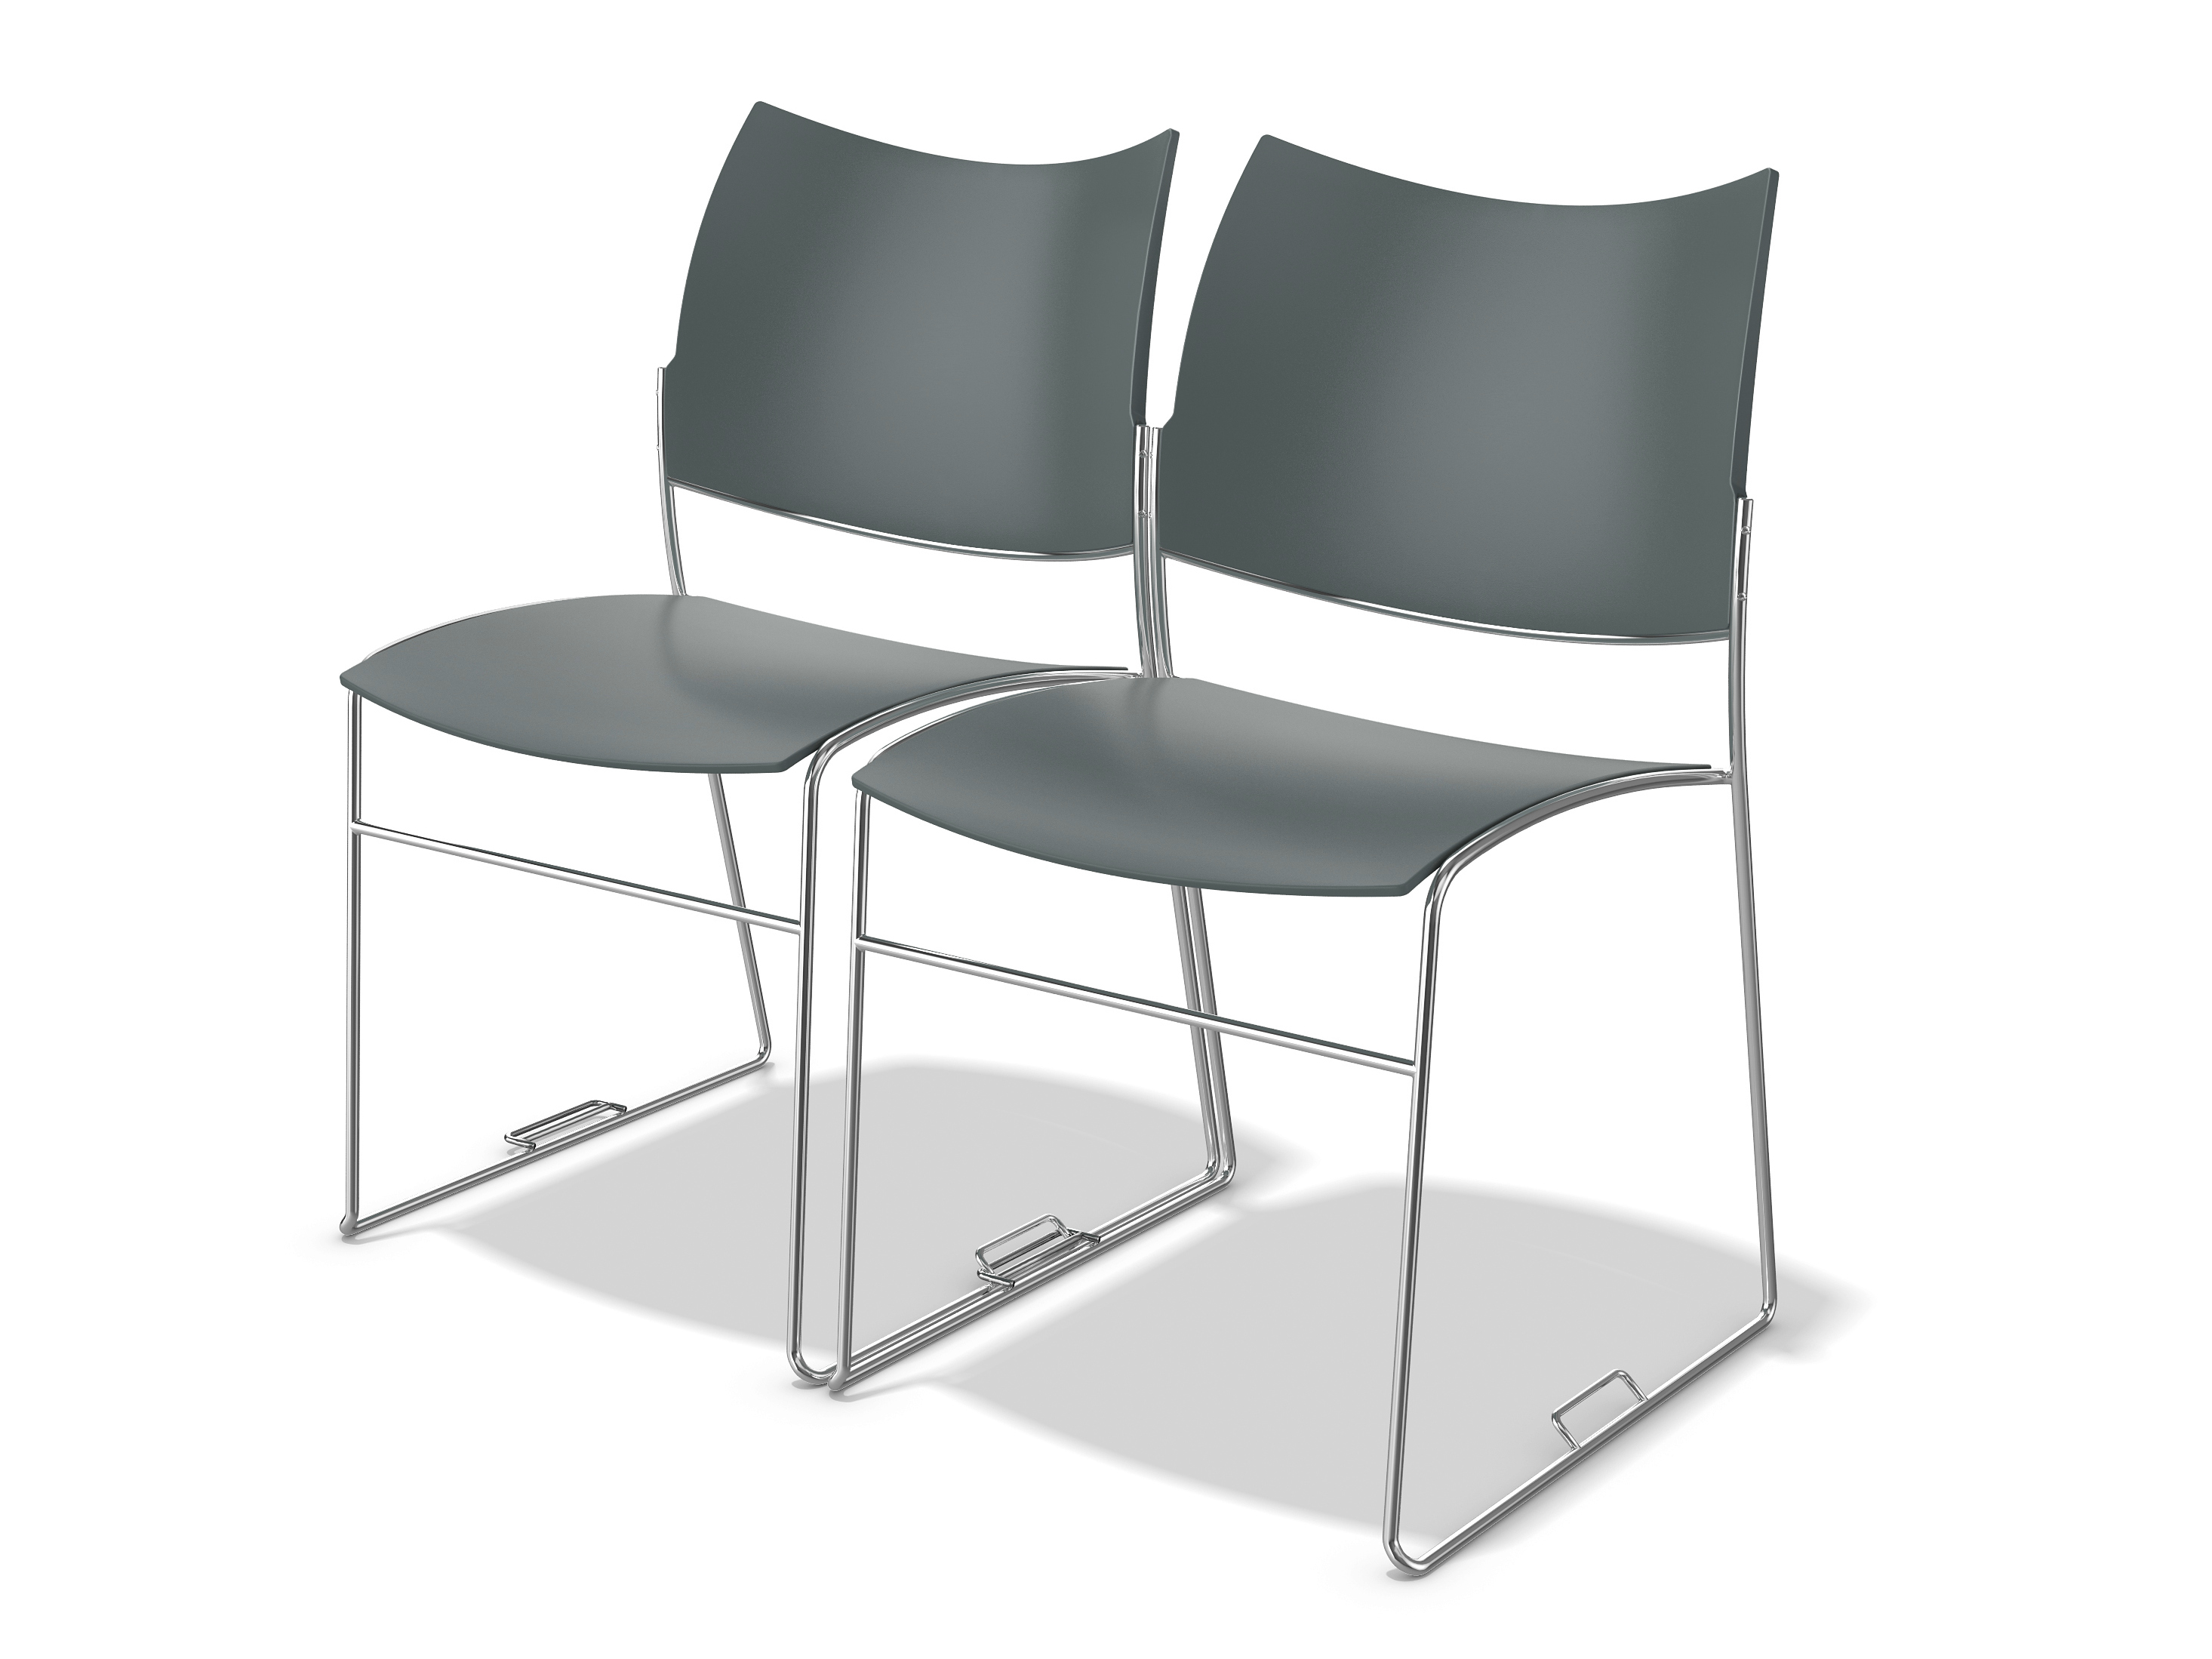 chair design course made to order chairs curvy with linking device by casala sigurd rothe